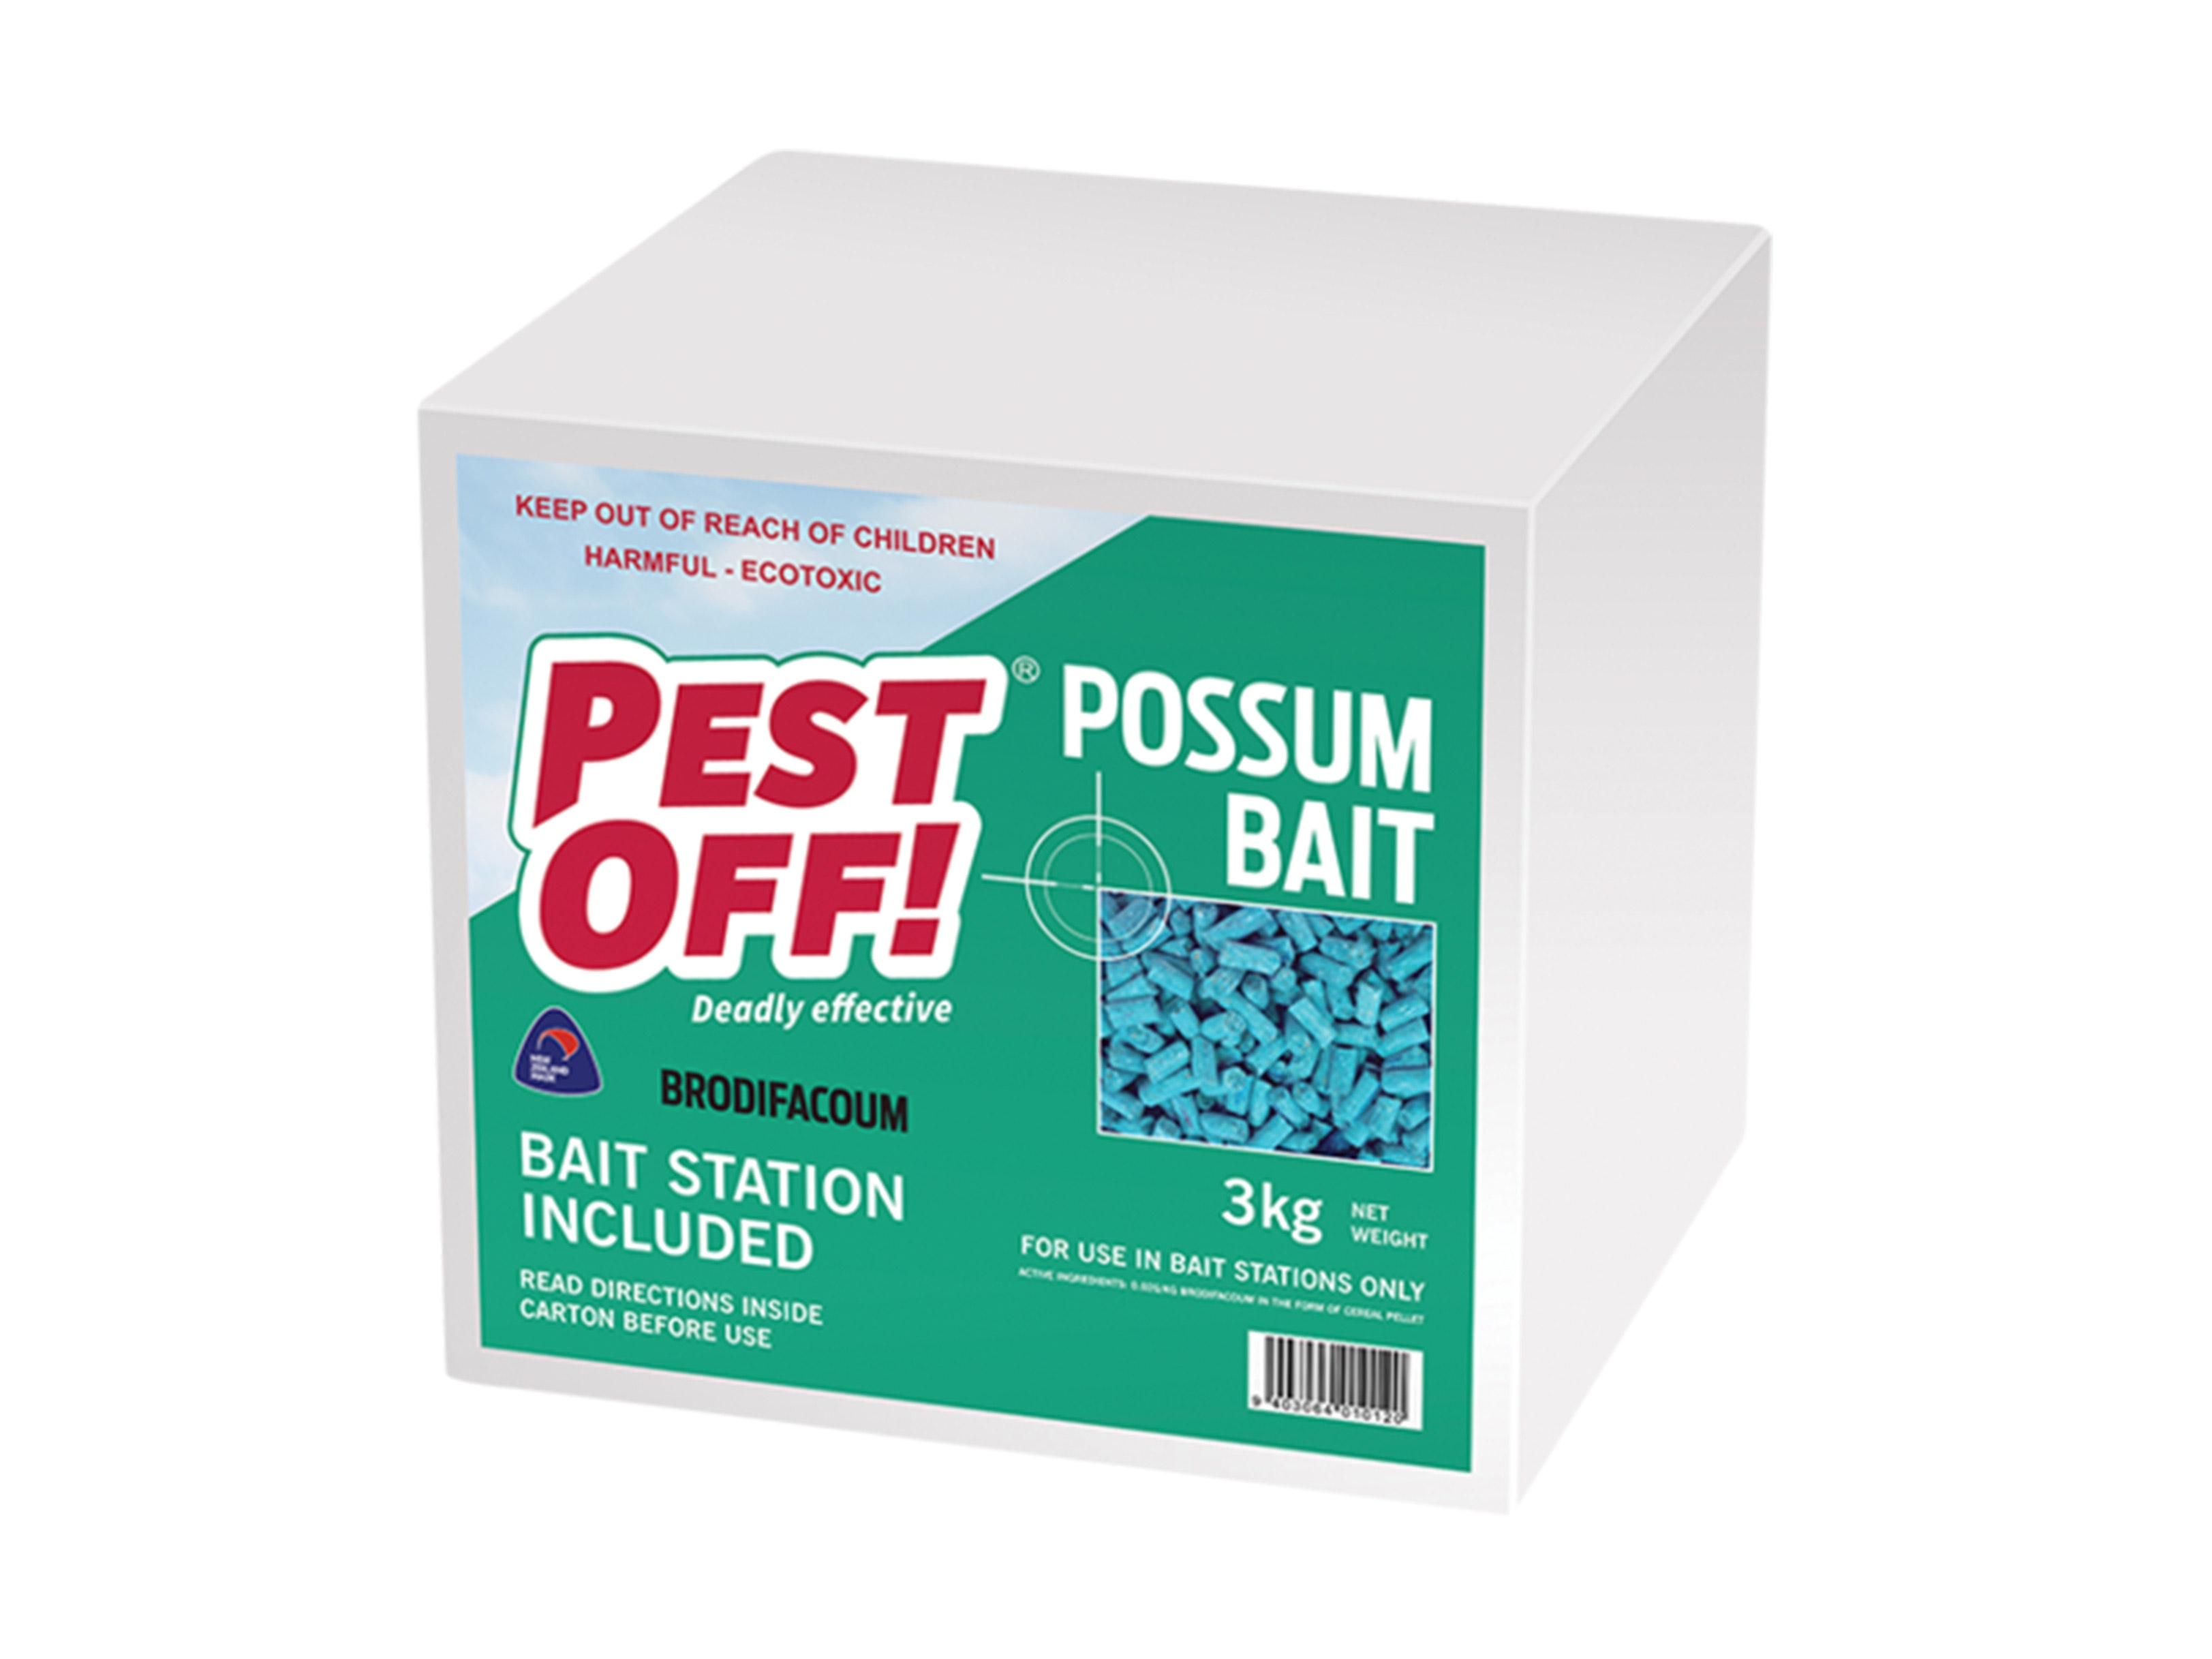 Pestoff Possum Bait 3kg & Bait Station